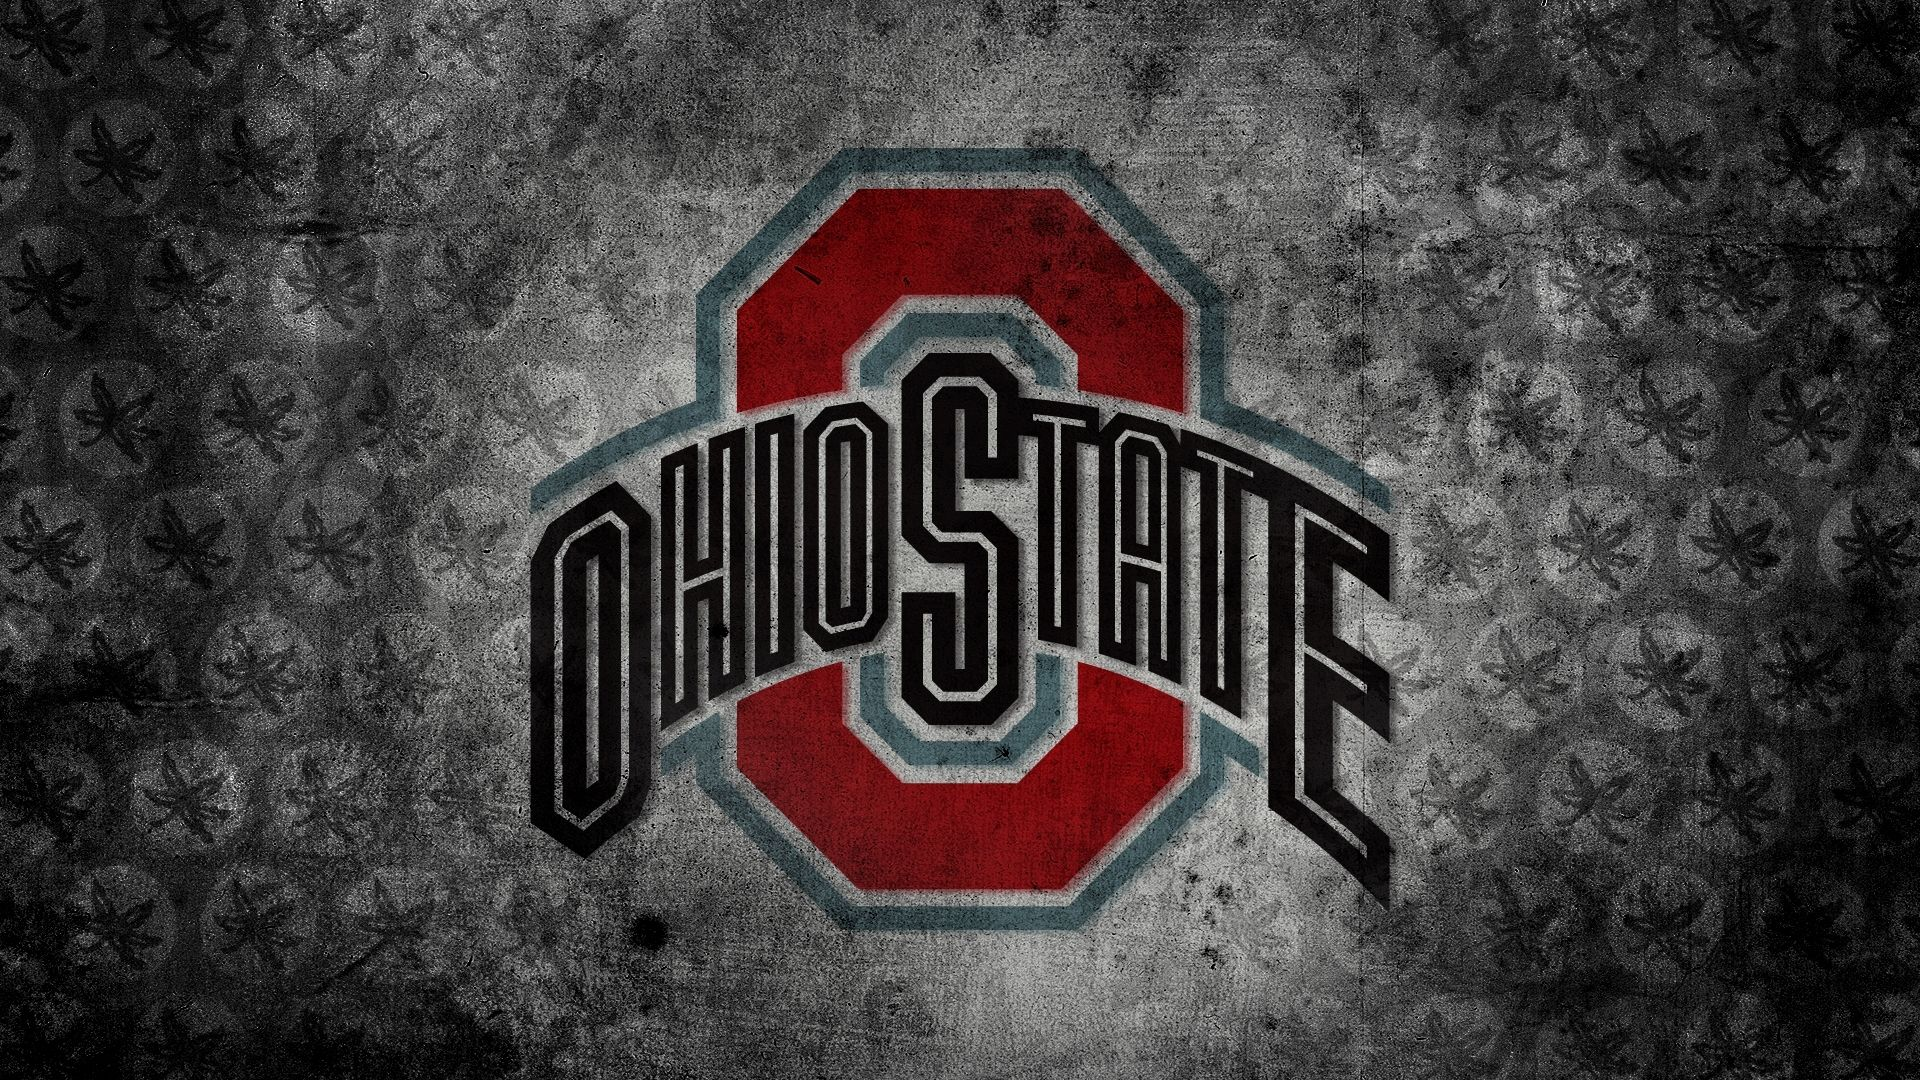 10 Most Popular Ohio State Desktop Backgrounds Full Hd 1080p For Pc Desktop Ohio State Buckeyes Football Ohio State Wallpaper Ohio State Basketball